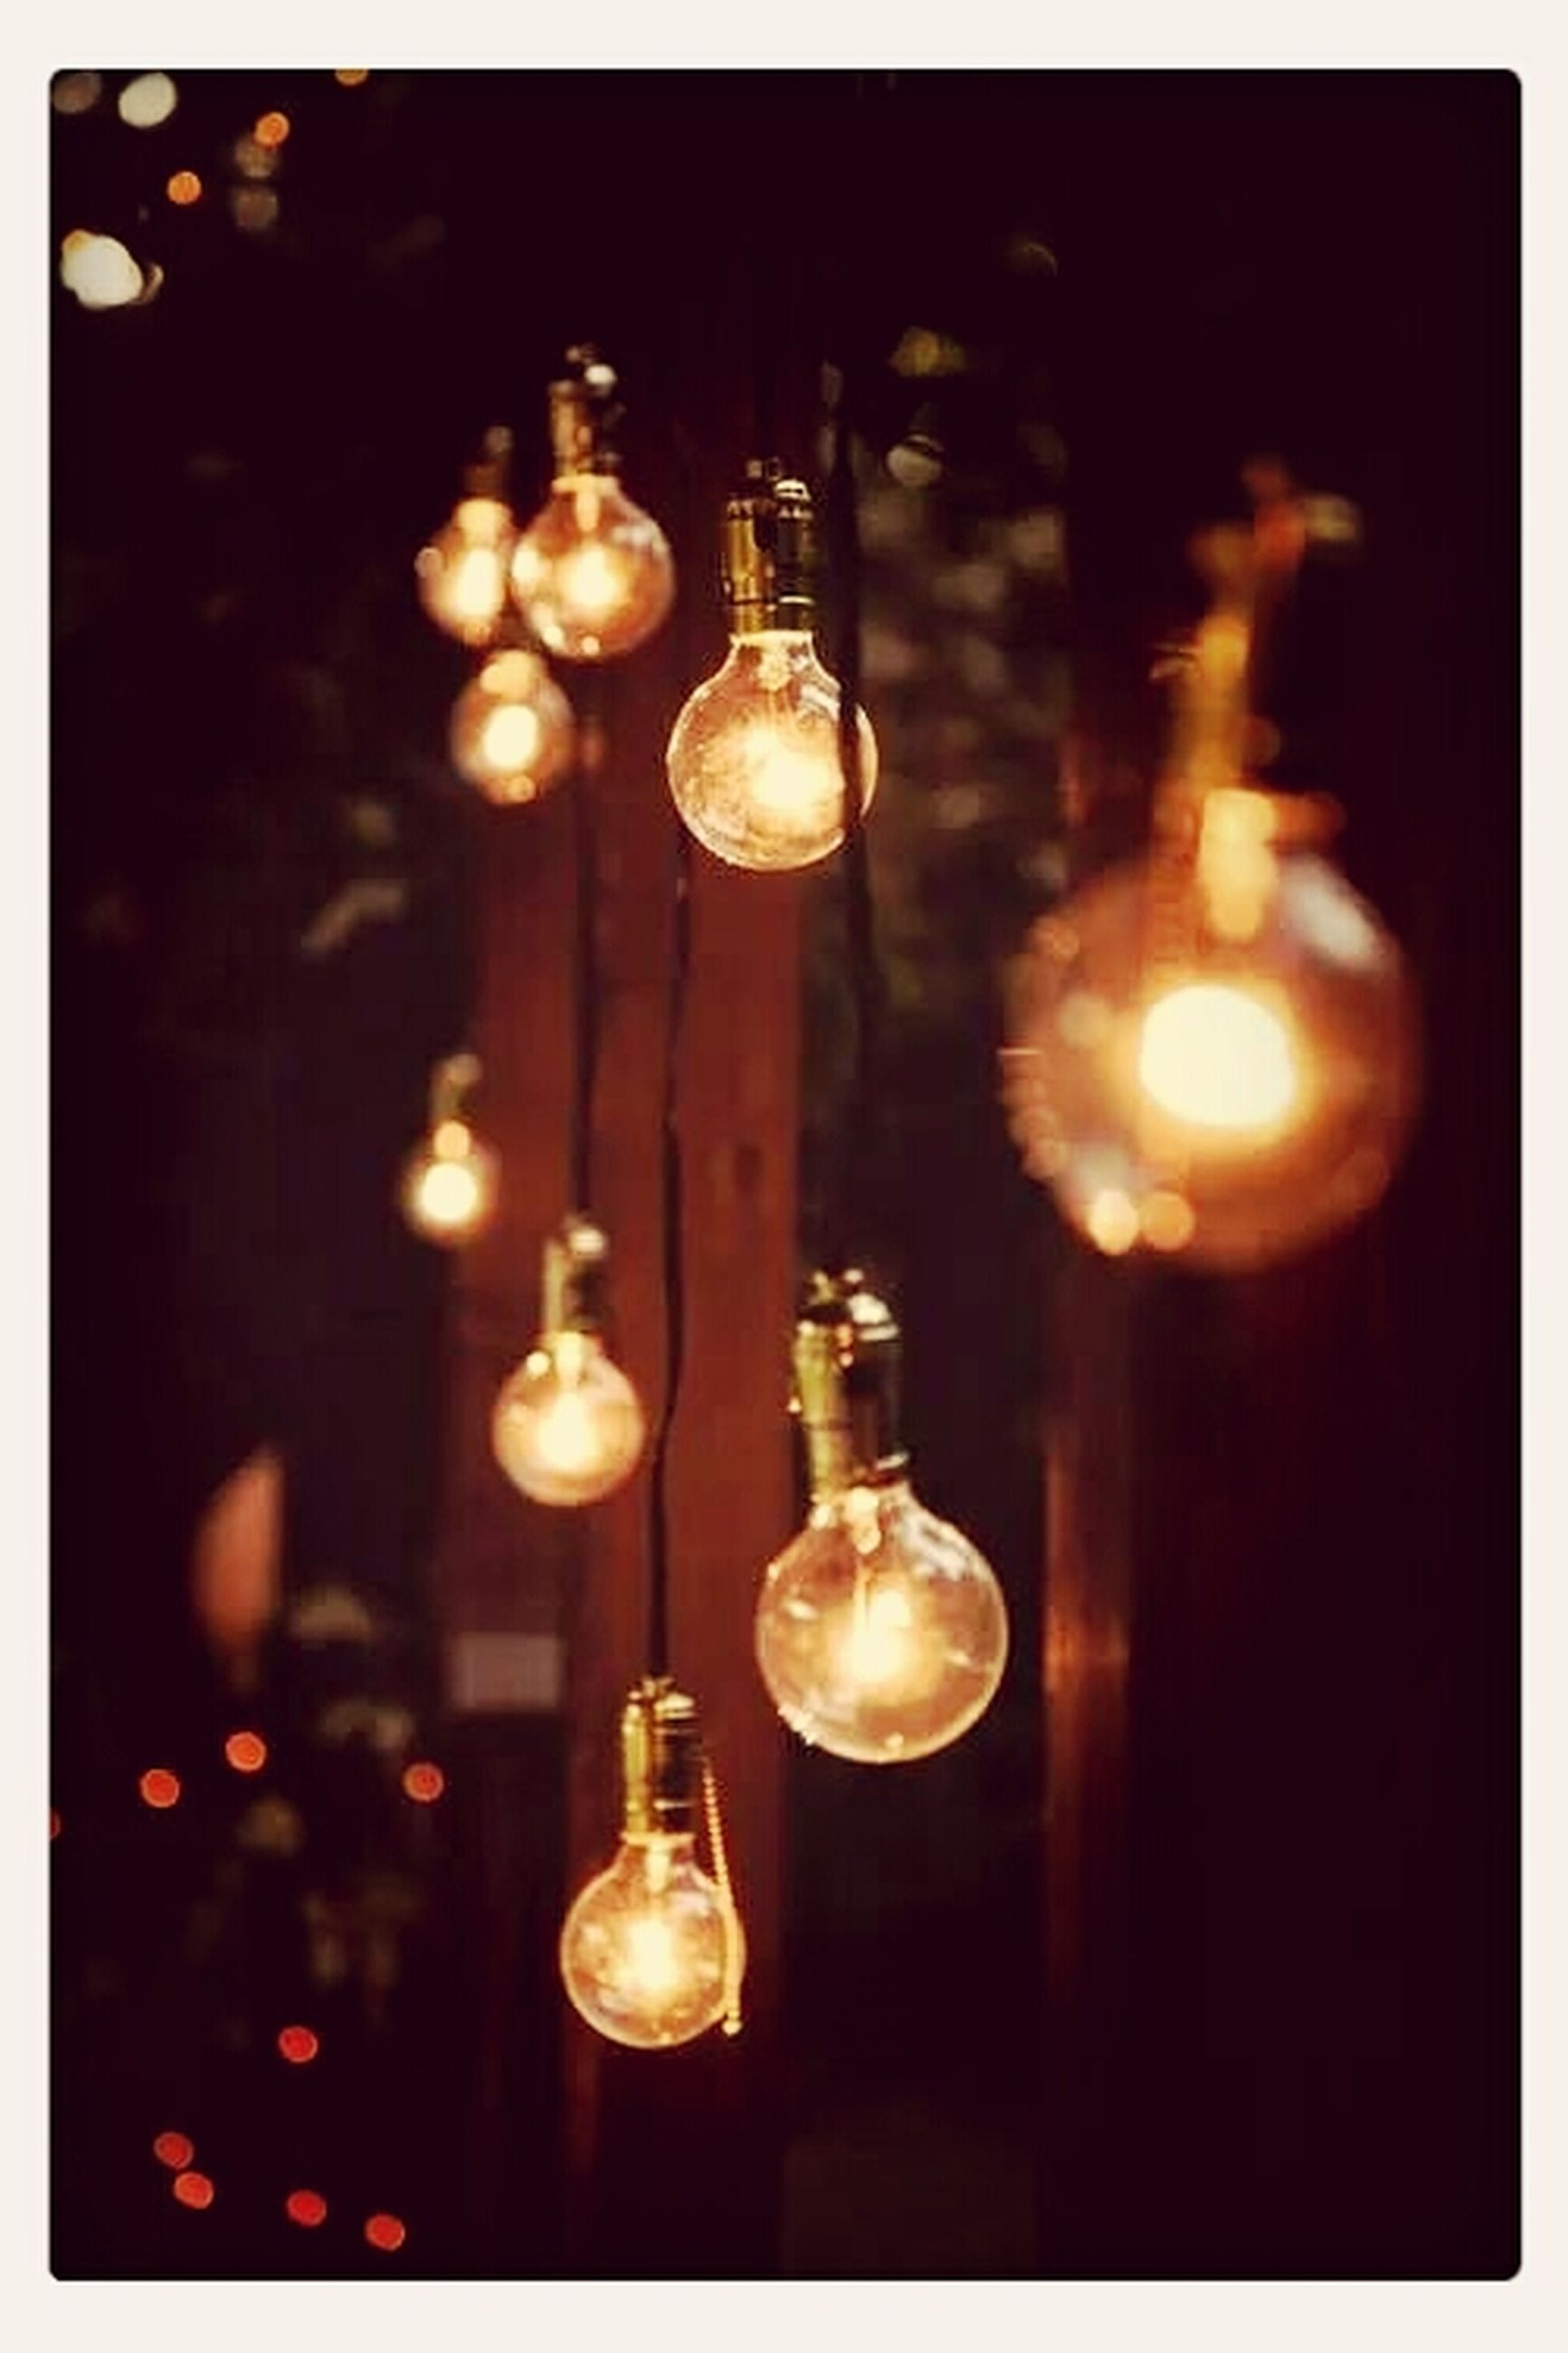 indoors, illuminated, lighting equipment, transfer print, light bulb, hanging, electricity, close-up, glowing, chandelier, auto post production filter, night, lit, light - natural phenomenon, decoration, electric light, focus on foreground, ceiling, no people, electric lamp